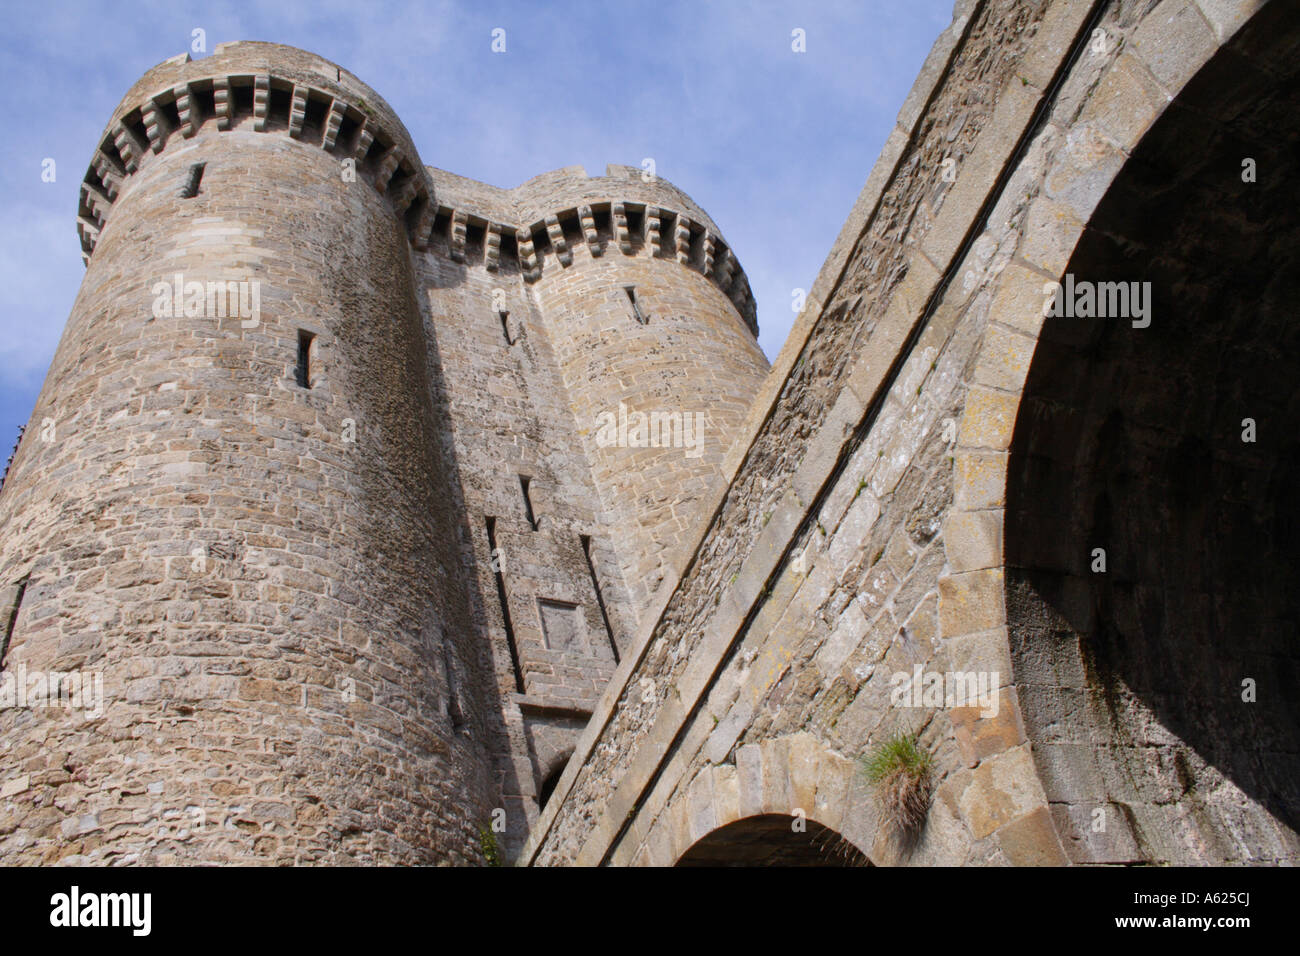 Fort de la Cité, St Servan, near St Malo, Brittany, France Stock Photo